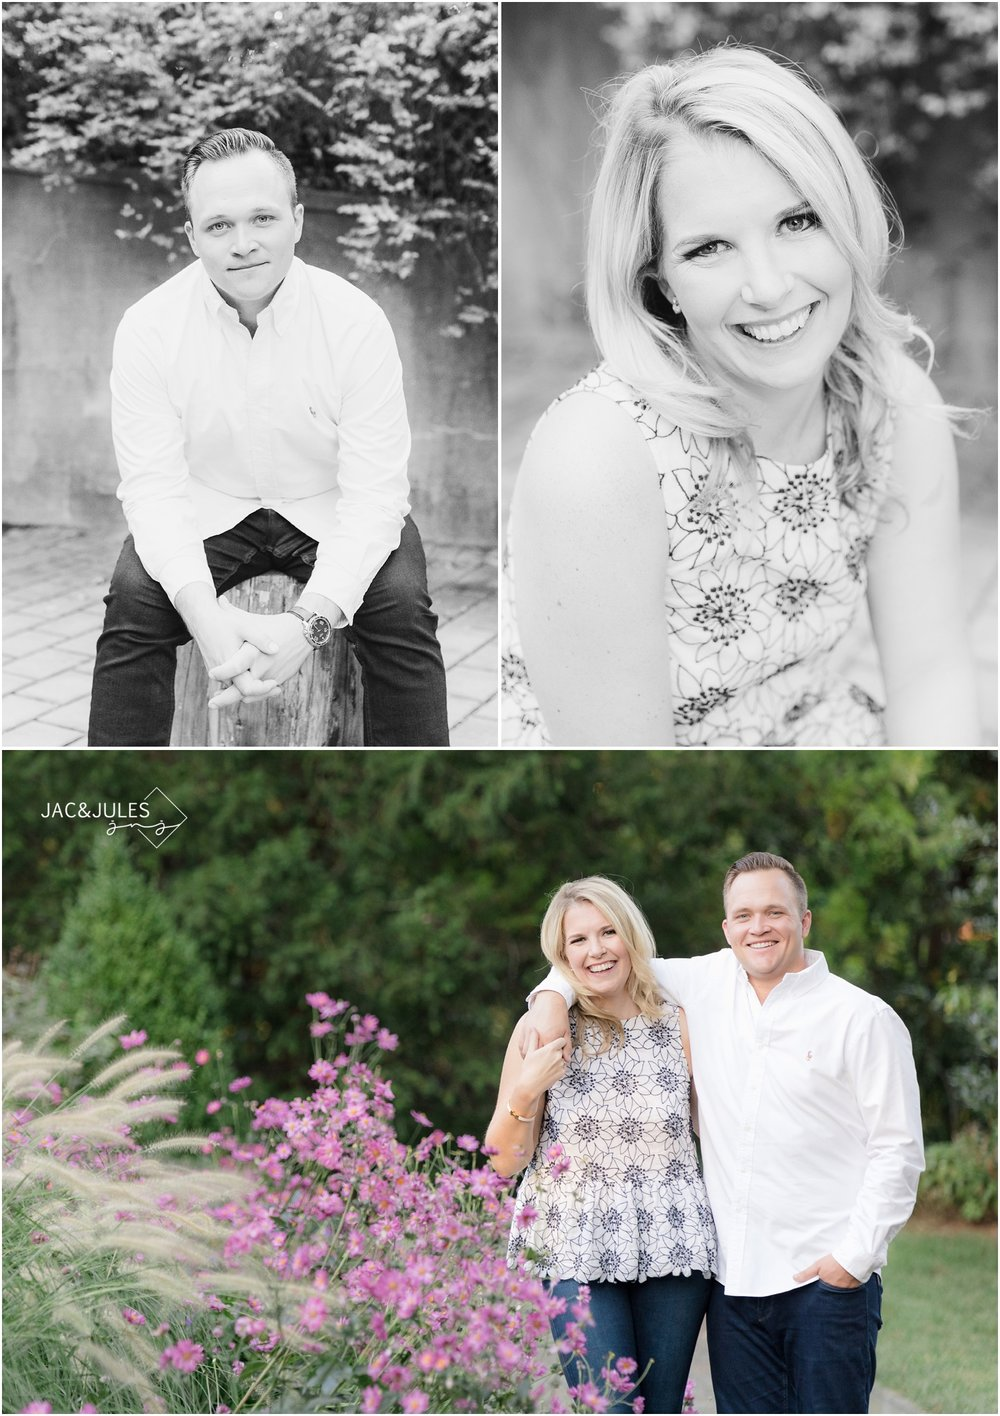 fun Engagement photos at Van Vleck House and Gardens in Montclair, NJ.